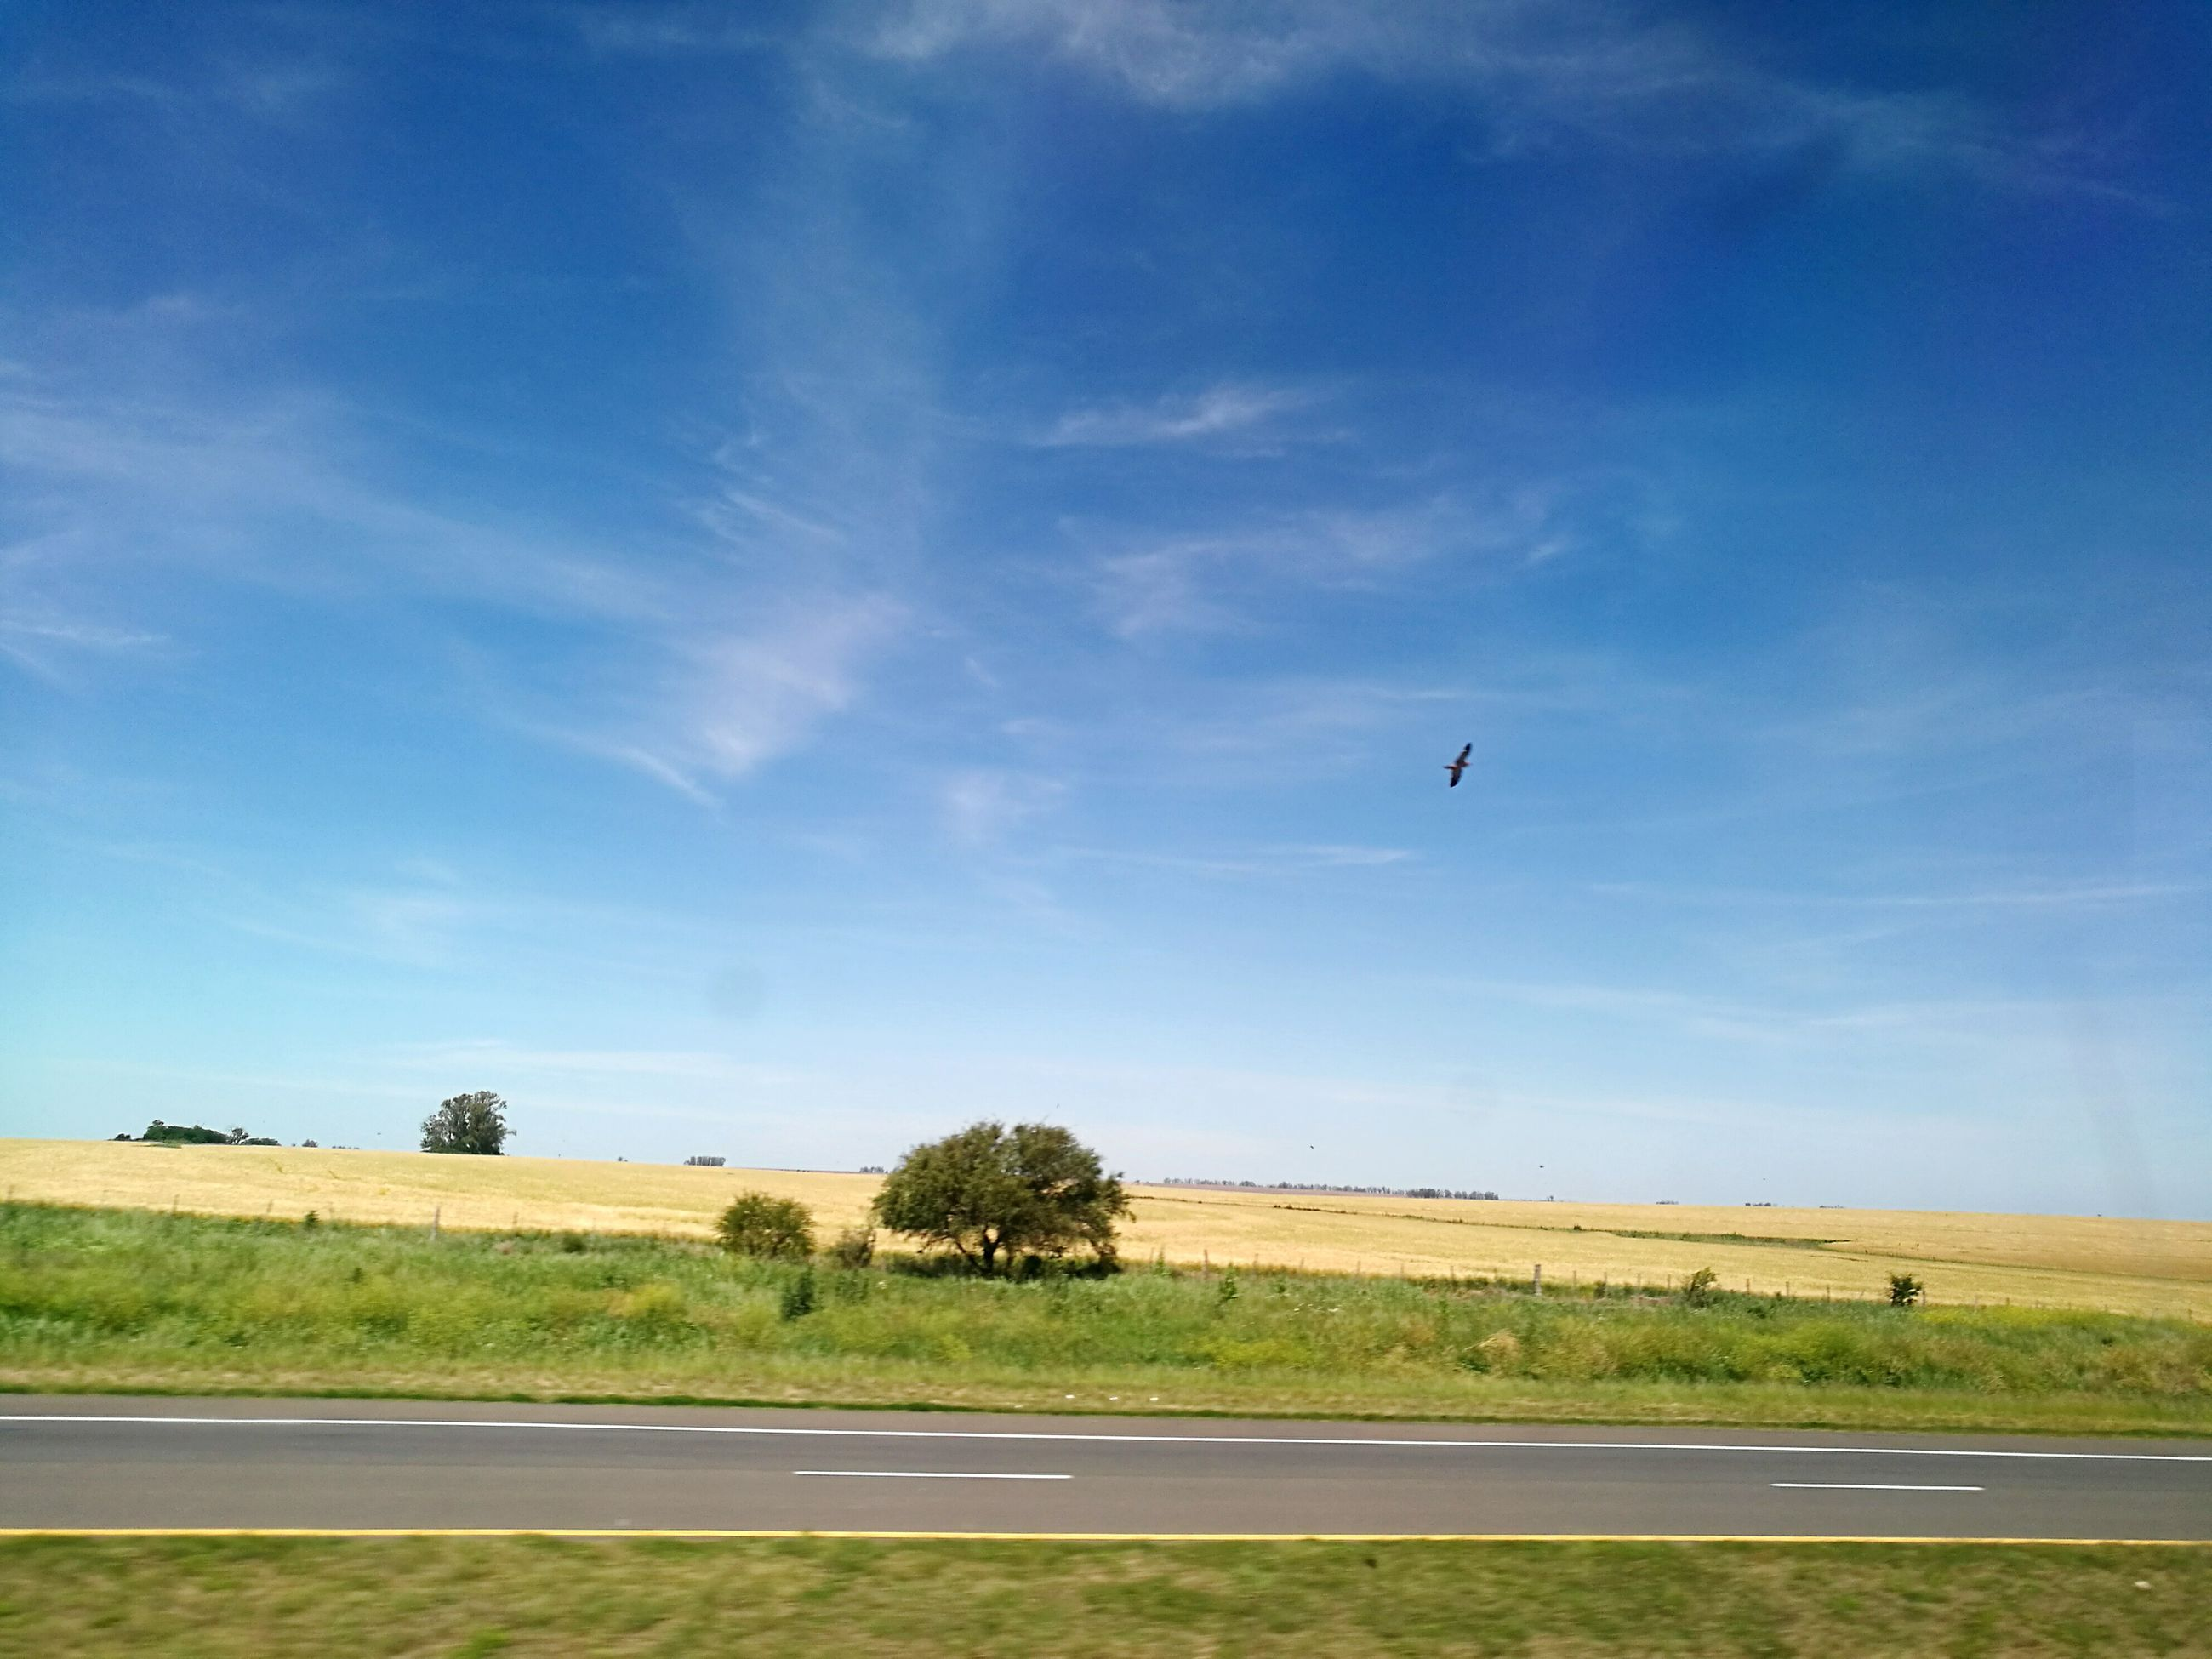 flying, bird, sky, no people, outdoors, tree, one animal, nature, cloud - sky, day